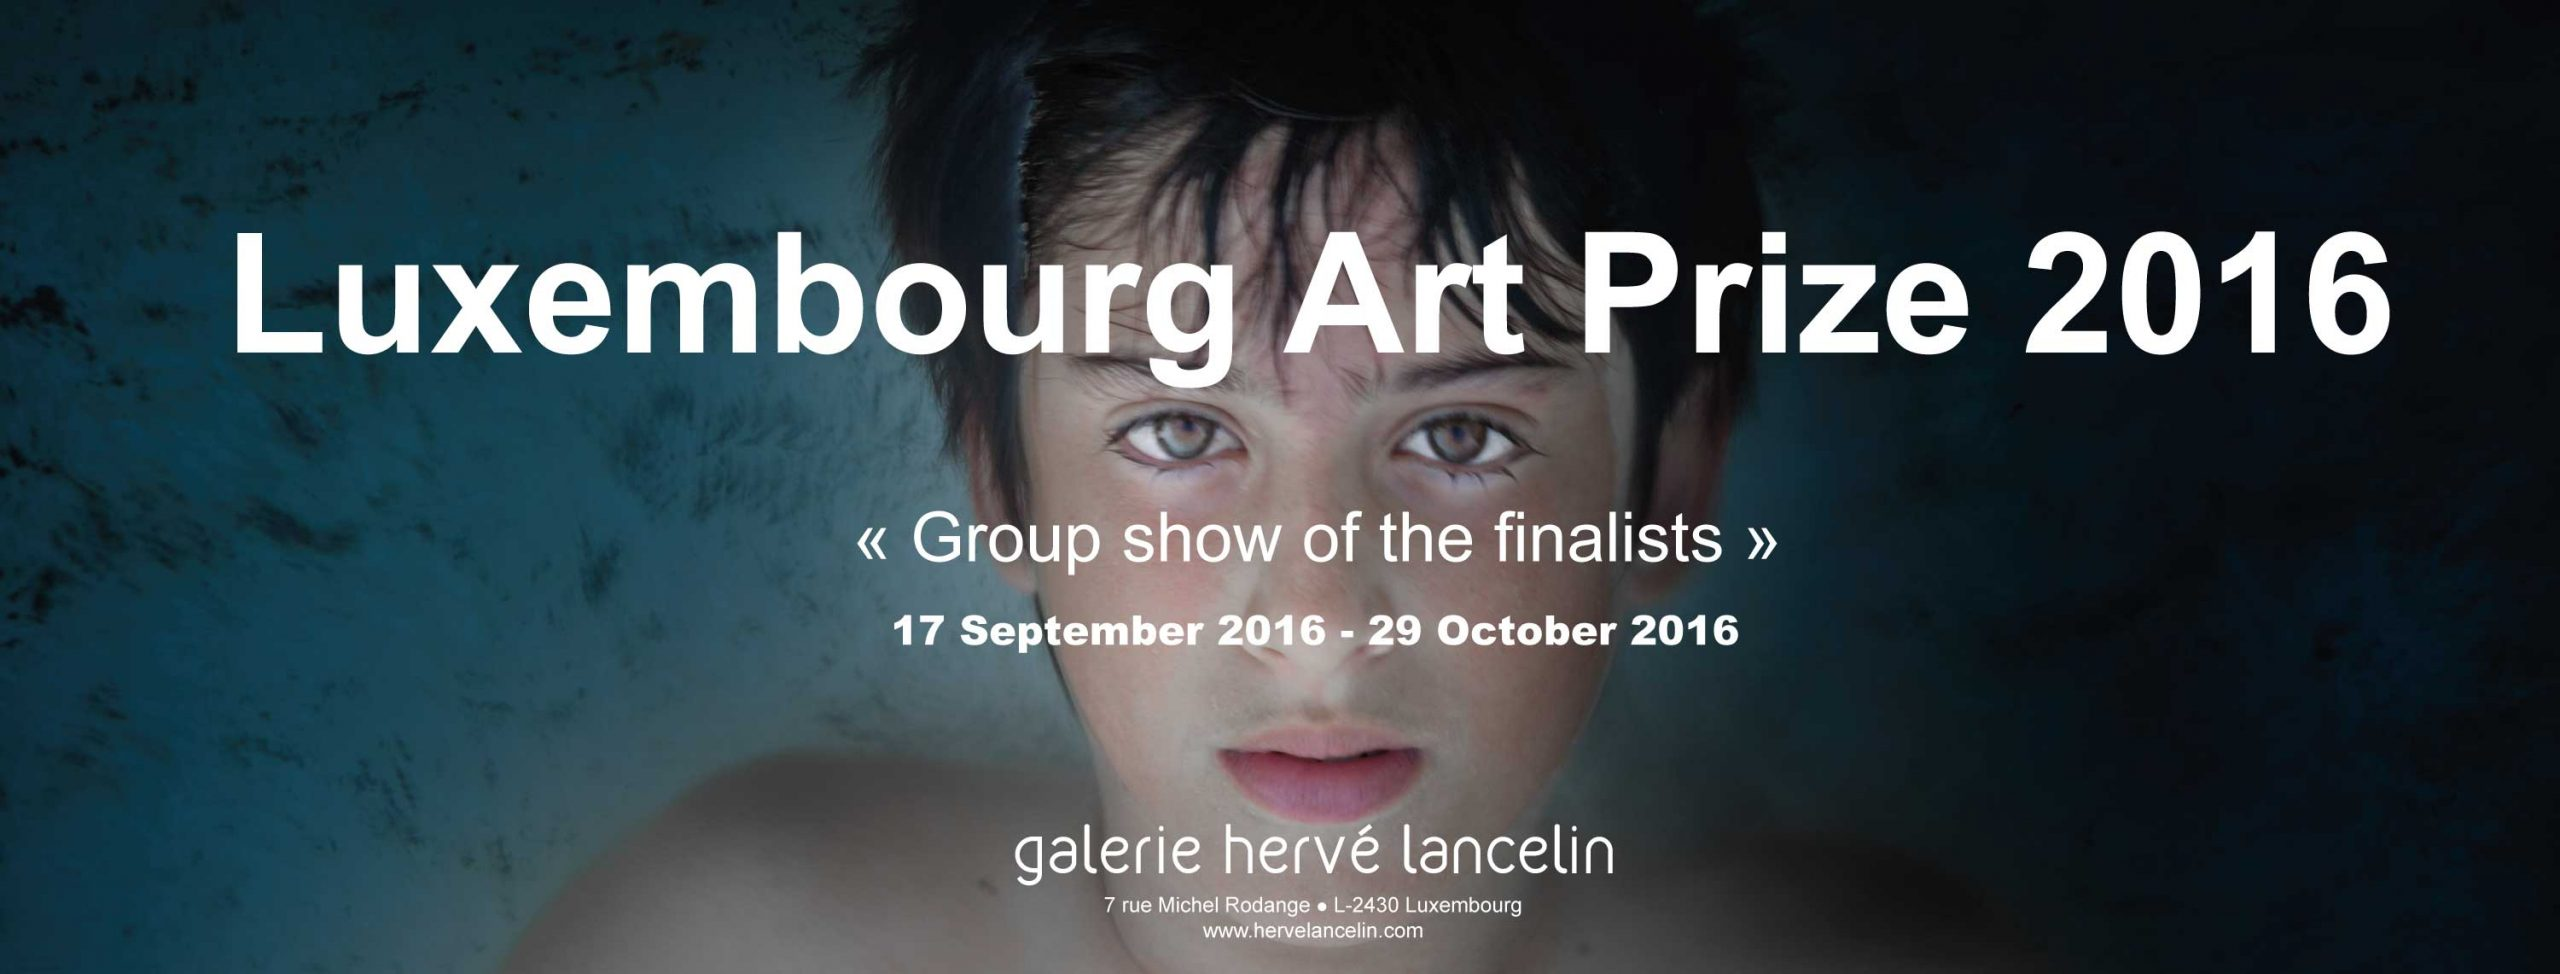 "Luxembourg Art Prize 2016 - ""Group show of the finalists"""